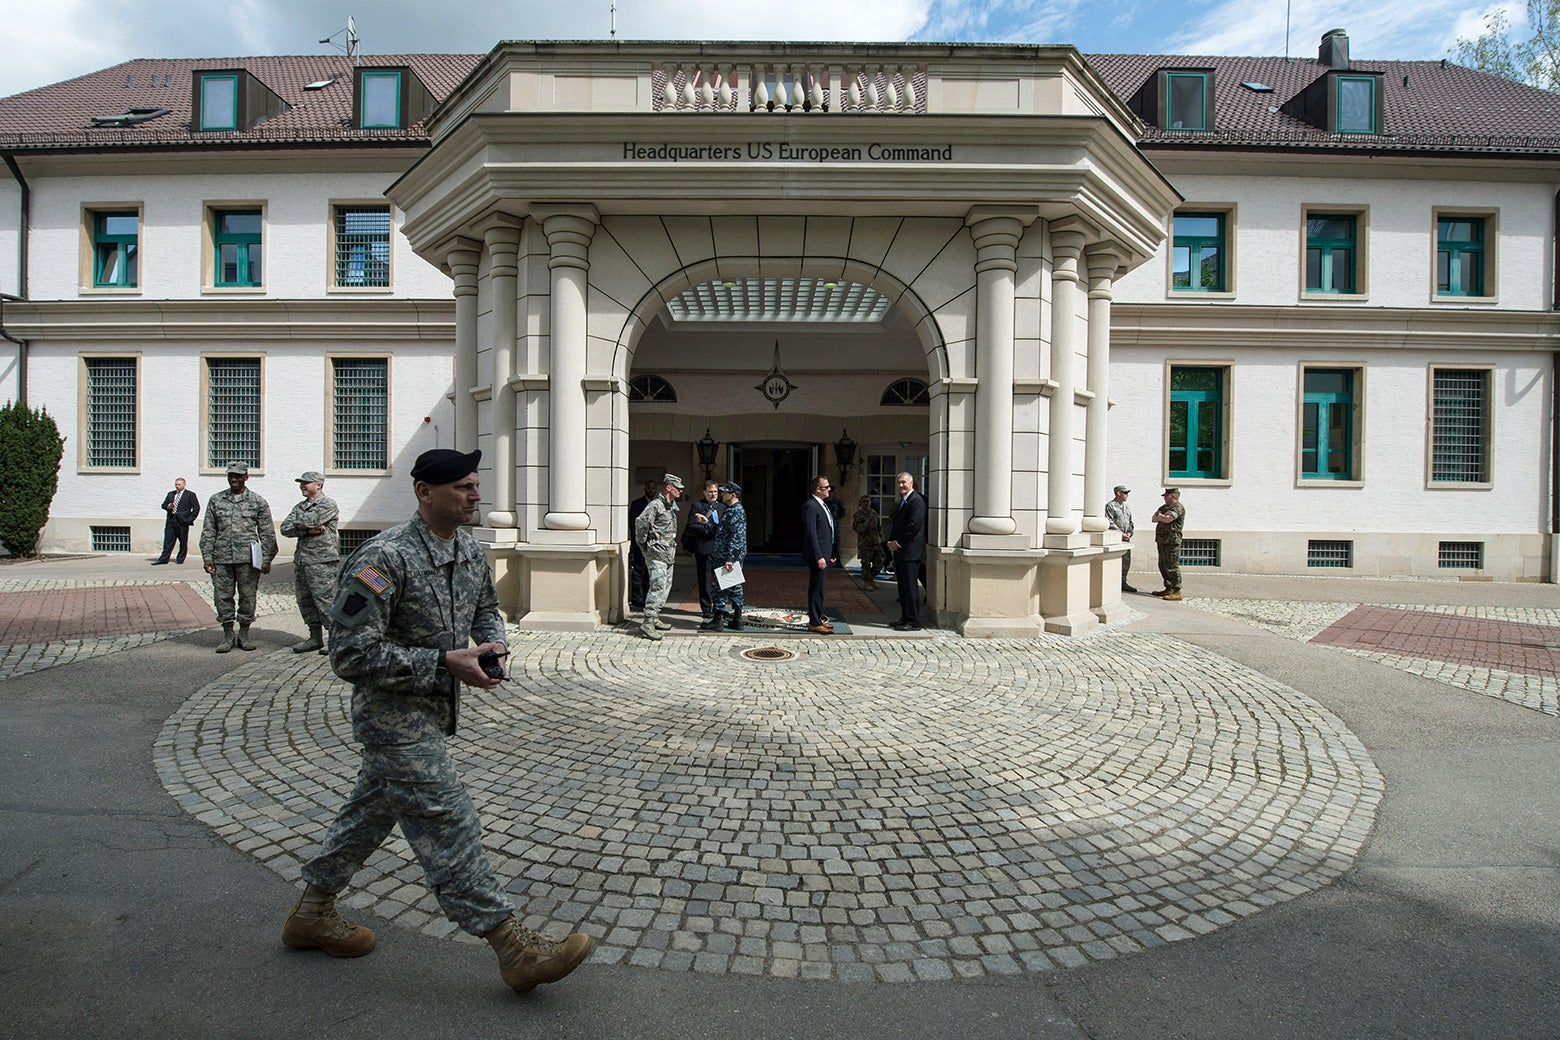 Members of the U.S. Armed Forces walk past a headquarters in Germany.